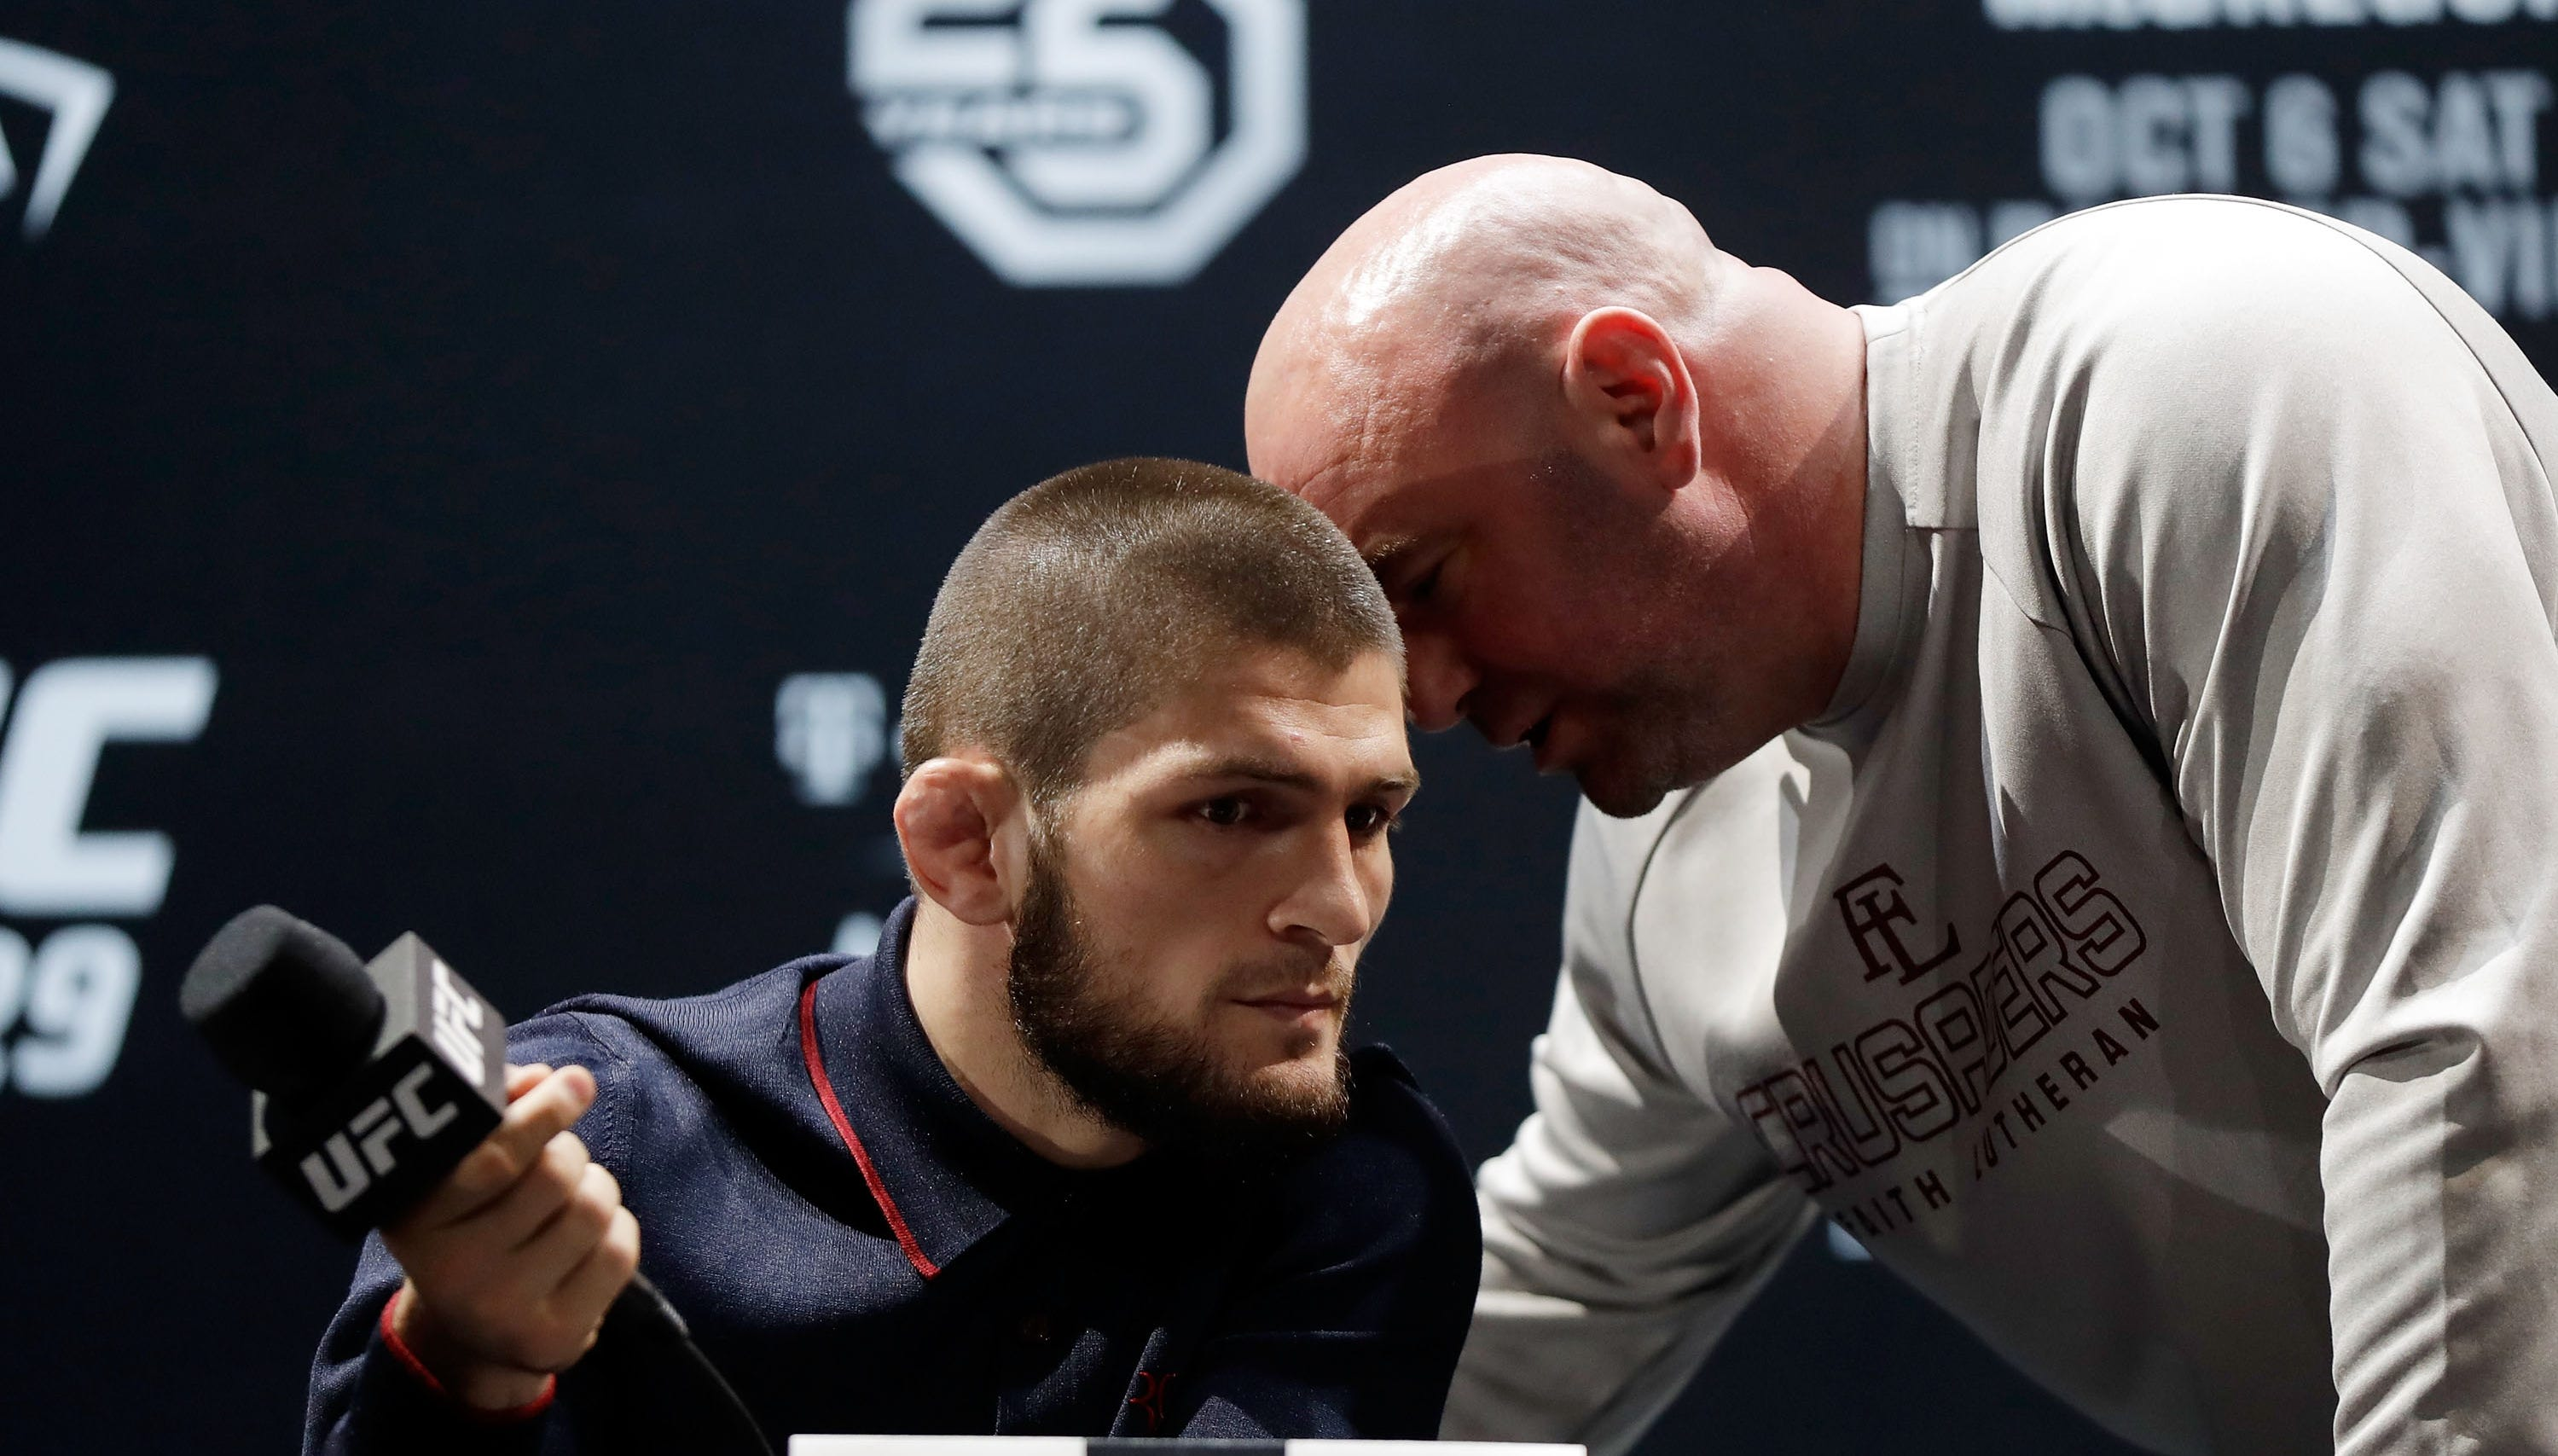 UFC President Dana White speaks with Khabib Nurmagomedov during a press conference for UFC 229.